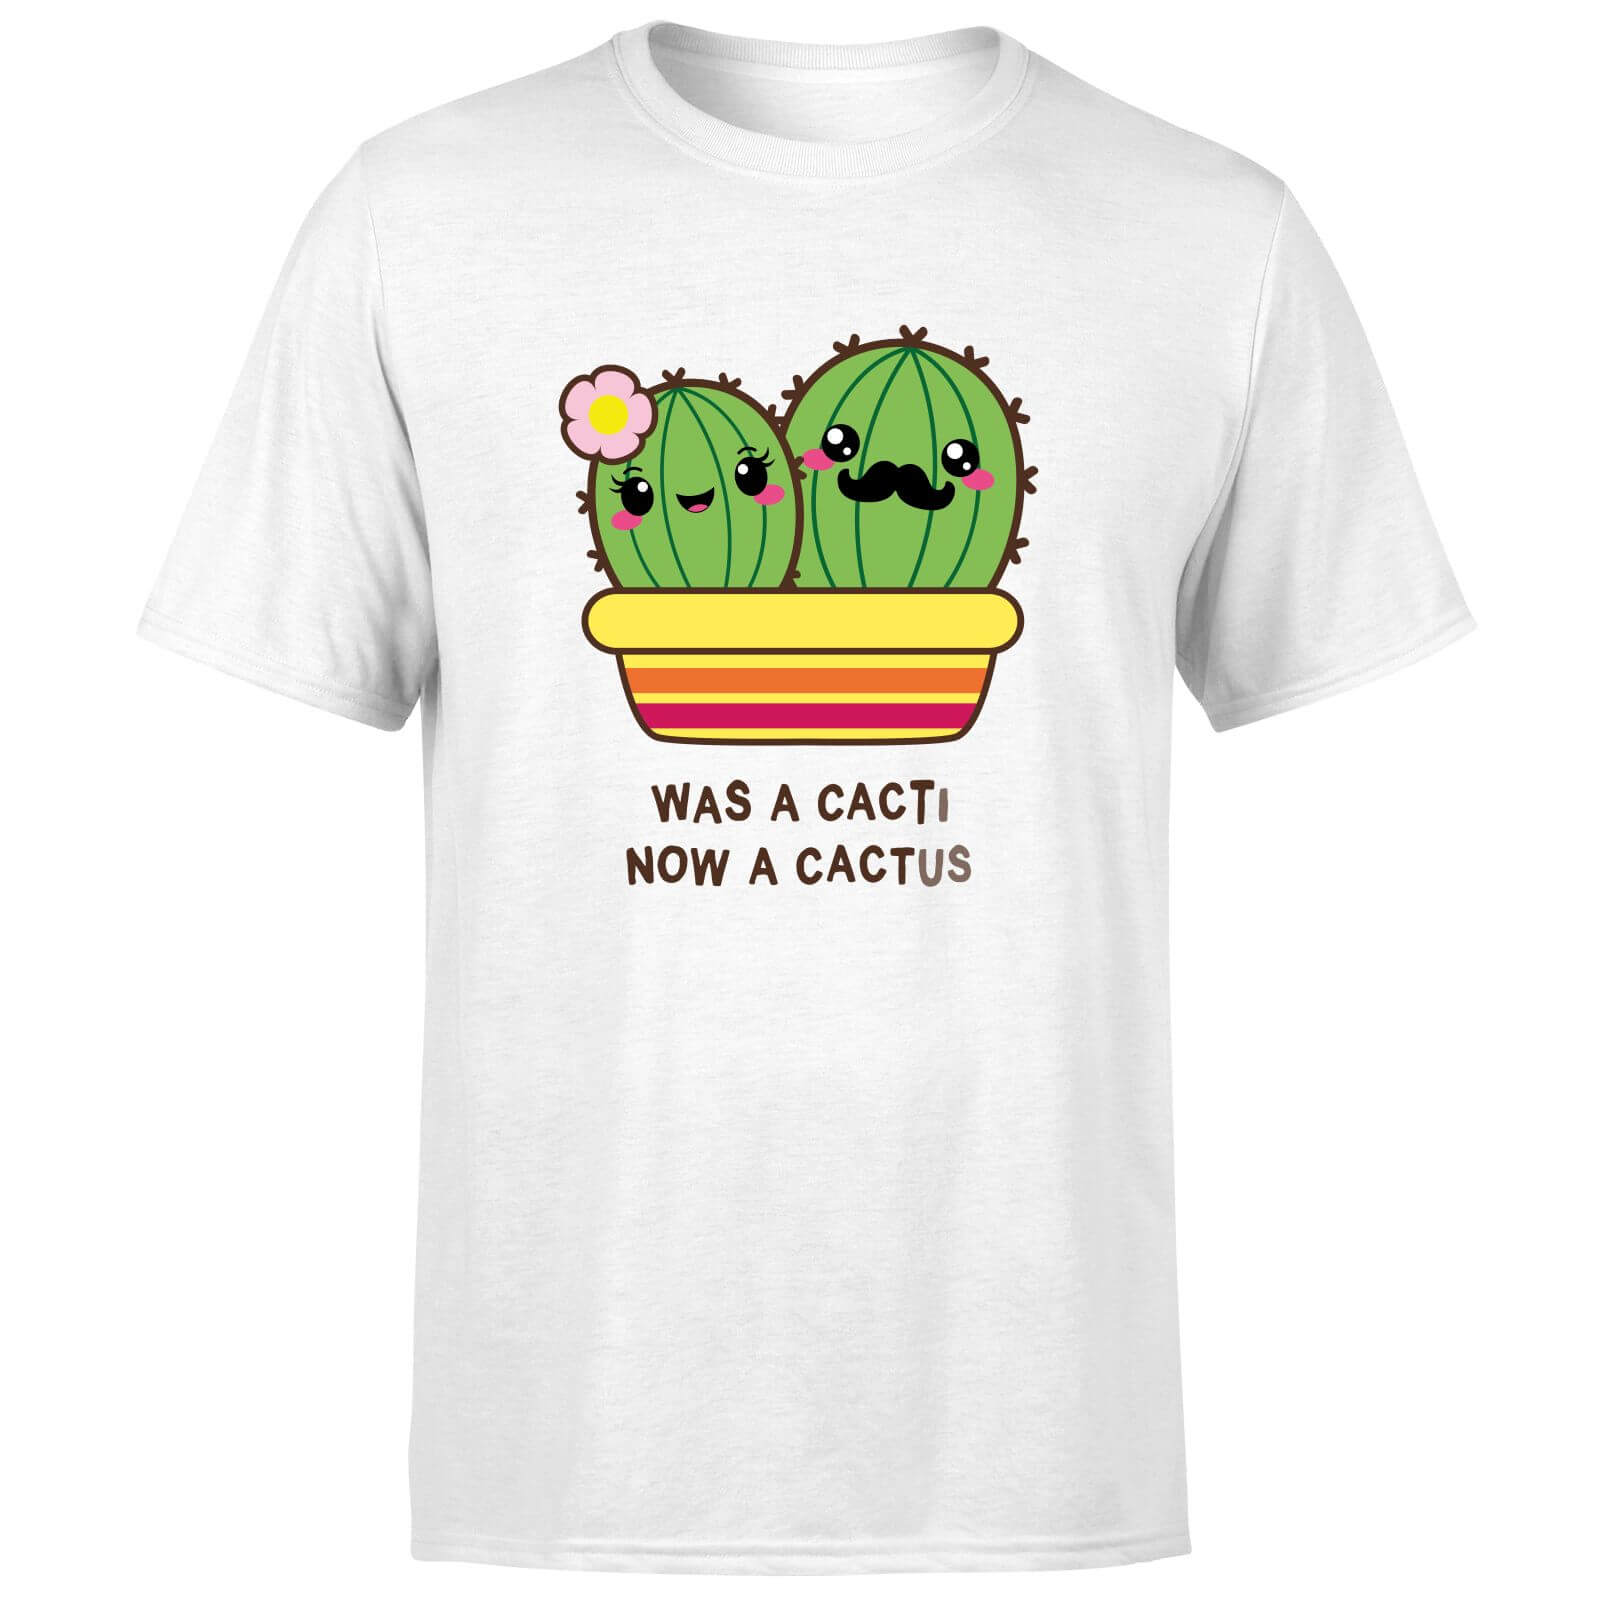 Was A Cacti, Now A Cactus T-Shirt - White